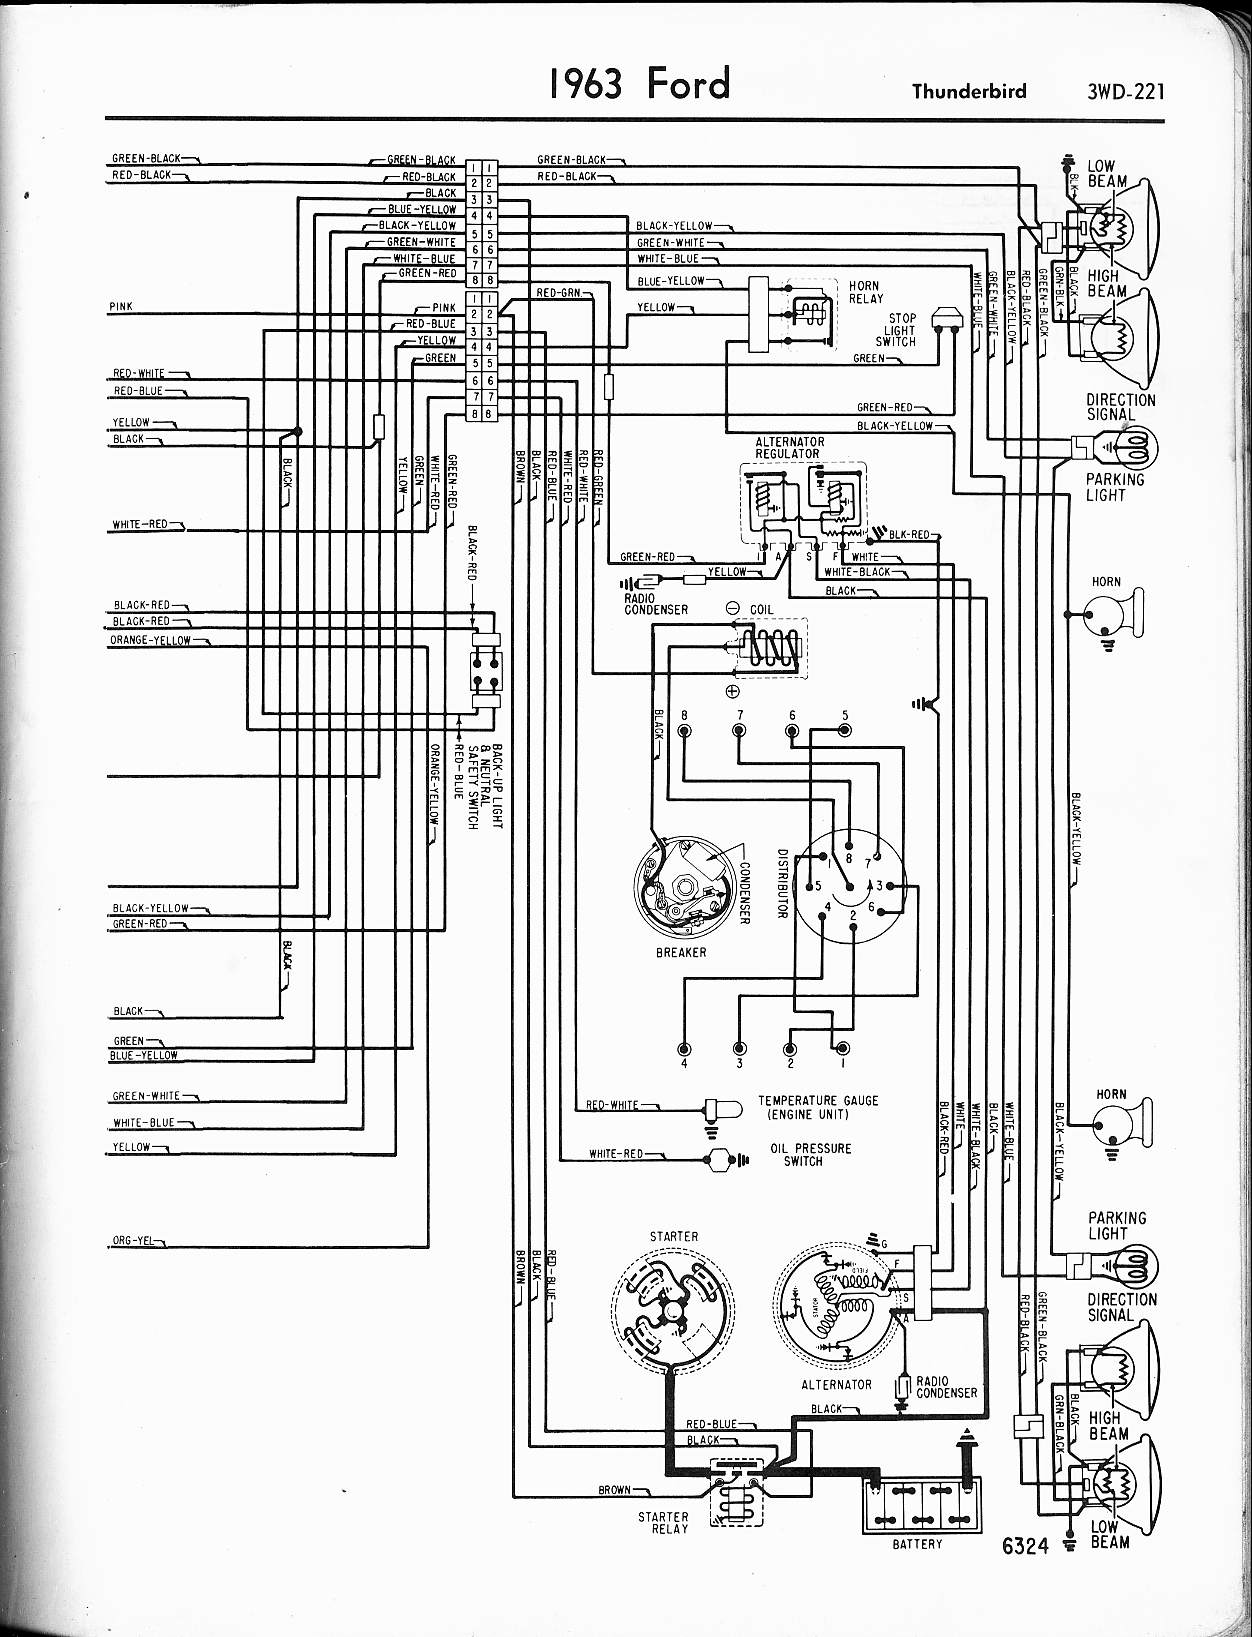 1963 Thunderbird Wiring Diagram Manual Guide Ford 57 65 Diagrams Rh Oldcarmanualproject Com 1962